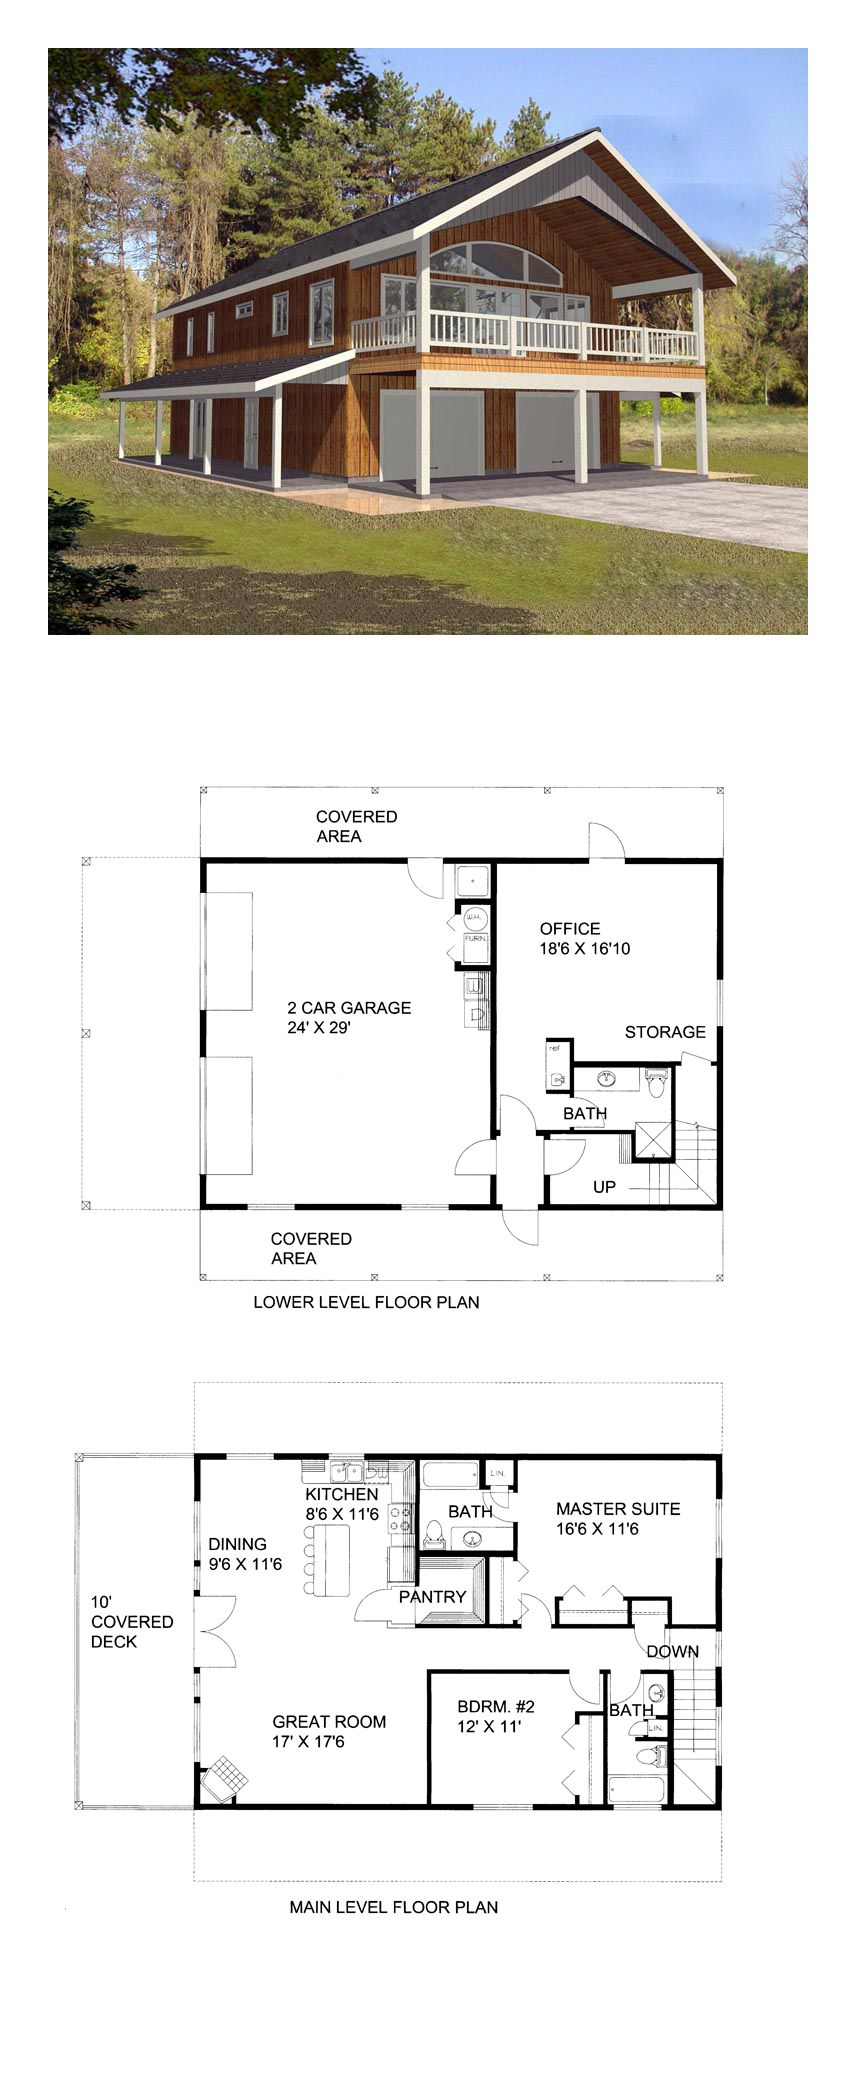 garage apartment plan 85372 total living area 1901 sq